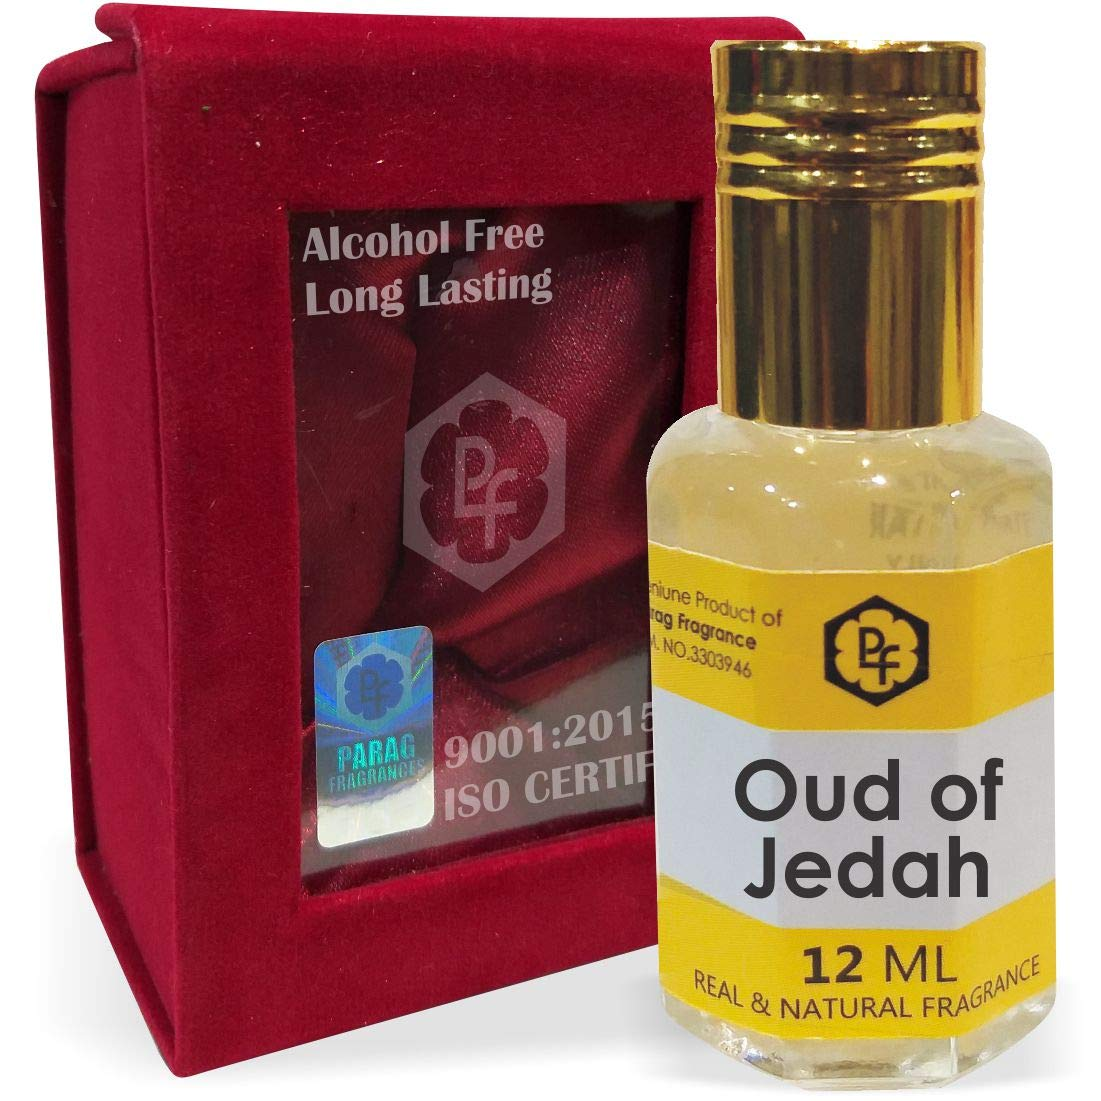 Parag Fragrances Oud of Jedah Attar 12ml With Precious Gift Pack|Best Attar For Man|Long Lasting Attar|Ittar|Attar|Perfume|Fragrance Oil|Gift For Man Also Available in 25ml/100ml/500ml